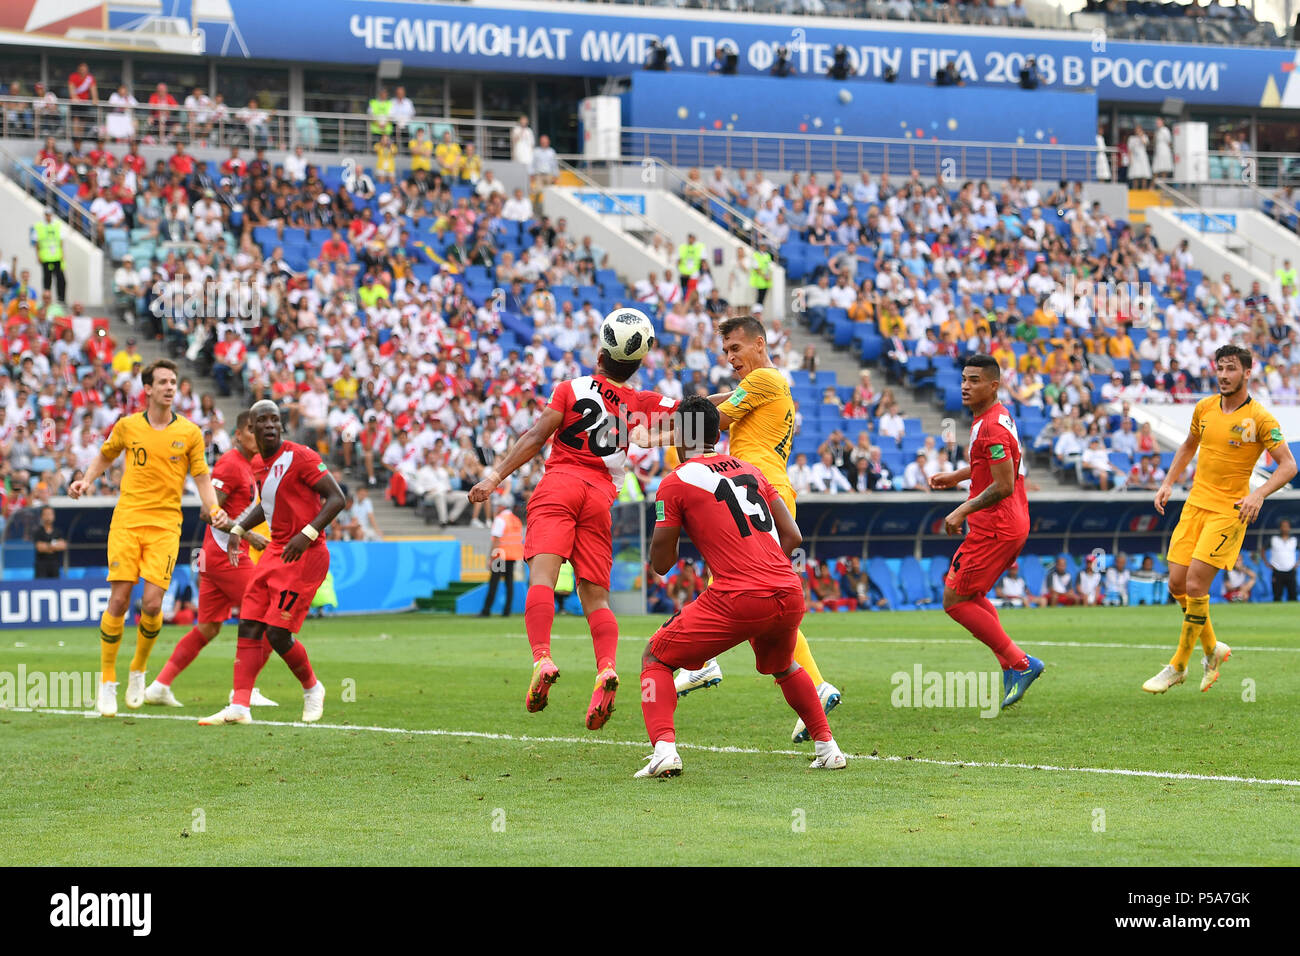 Sochi, Russland. 26th June, 2018. goalchance Tom ROGIC (AUS), Header, Area, Action, duels versus Edison FLORES (PER), Australia (AUS) - Peru (PER) 0-2, Preliminary round, Group C, Game 38, on 06/26/2018 in SOCHI, Fisht Olymipic Stadium. Football World Cup 2018 in Russia from 14.06. - 15.07.2018. | usage worldwide Credit: dpa/Alamy Live News - Stock Image